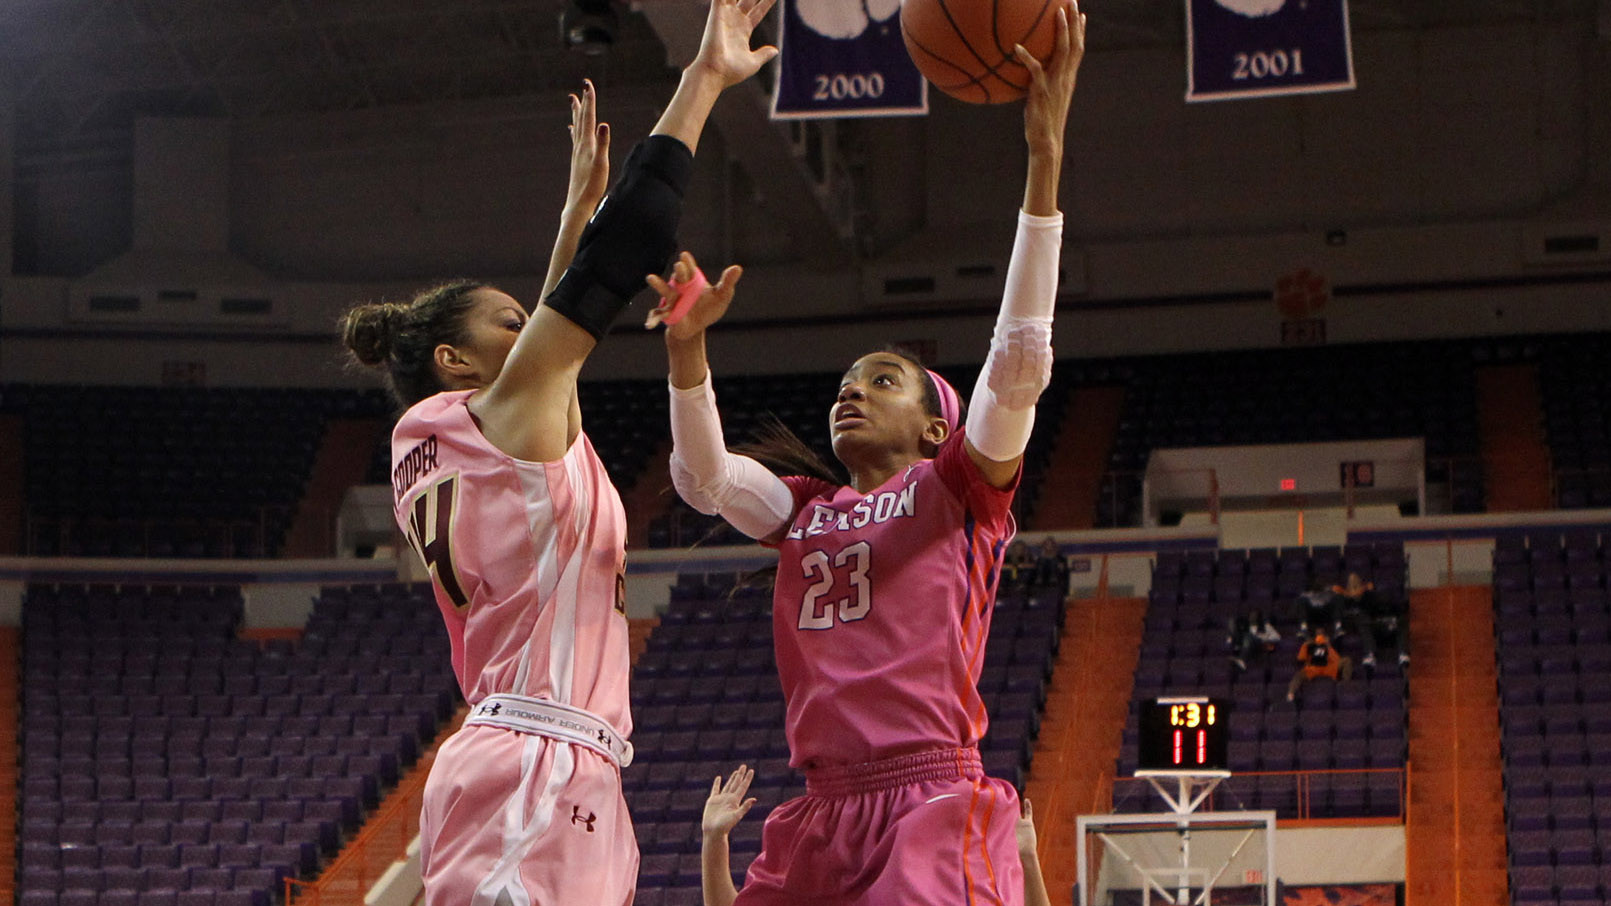 EXCLUSIVE: Dunn Goes Into Attack Mode in Win over BC